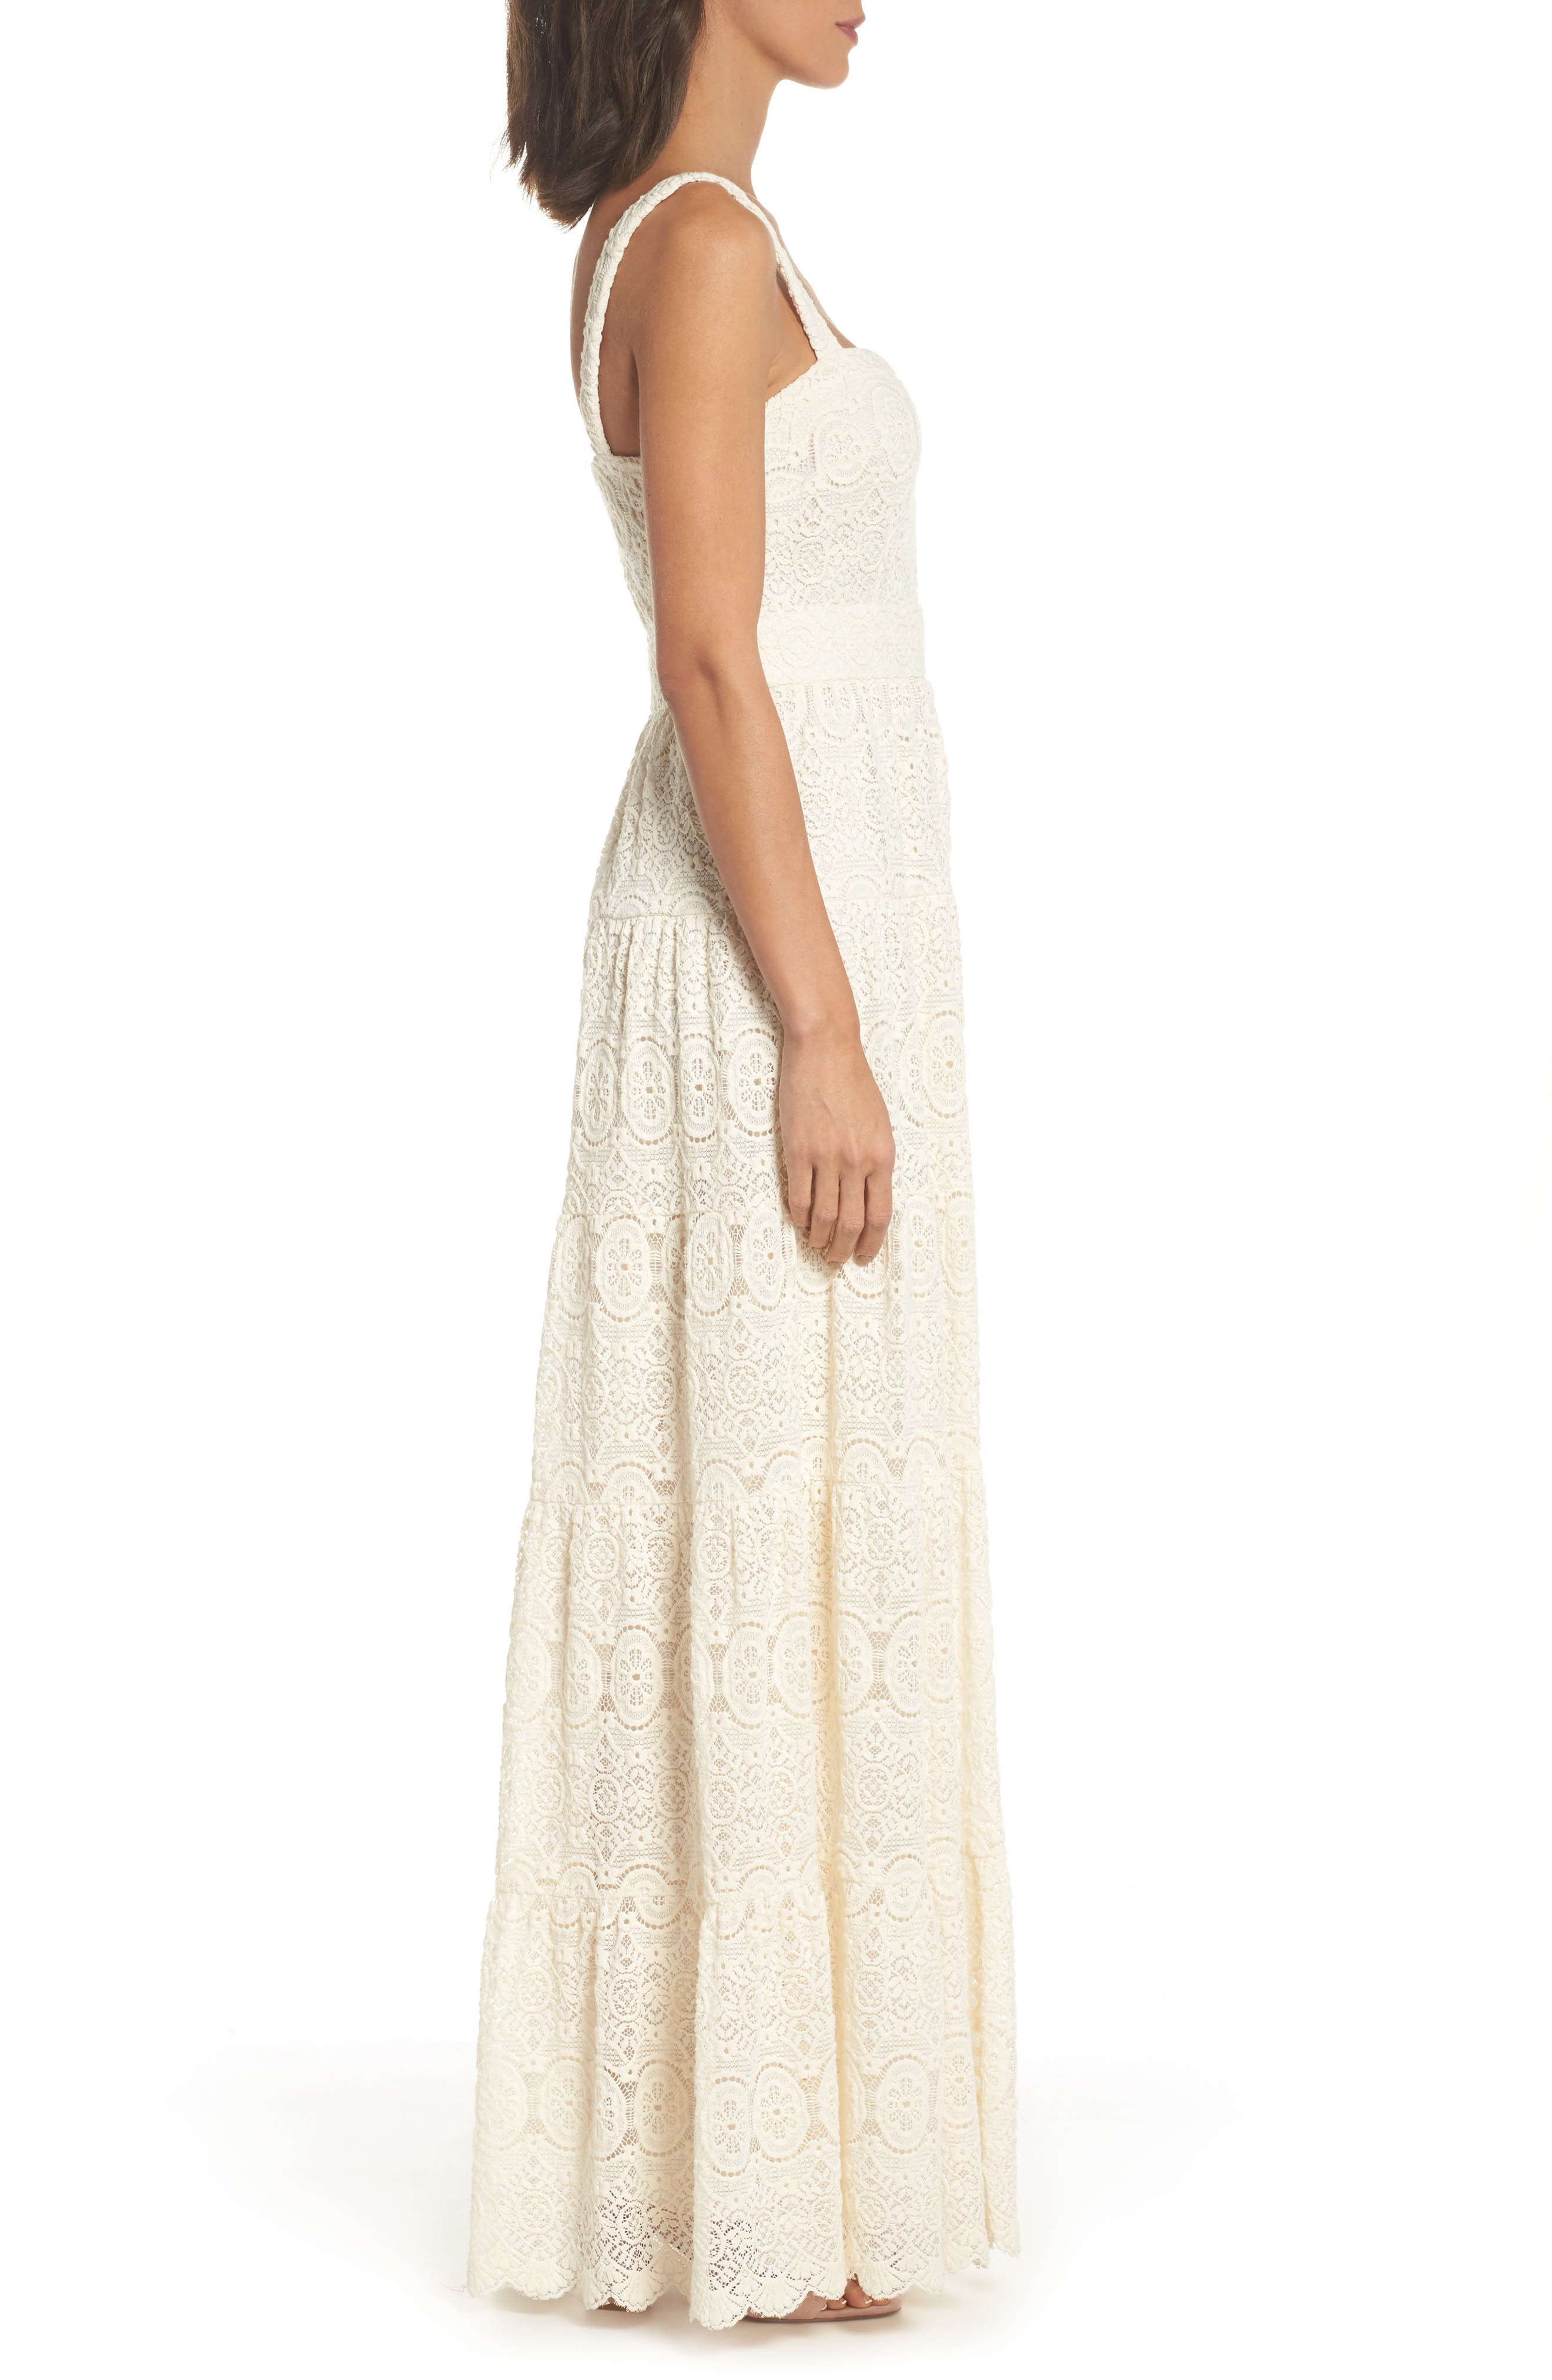 Tiered Lace Maxi Dress,                             Alternate thumbnail 3, color,                             900